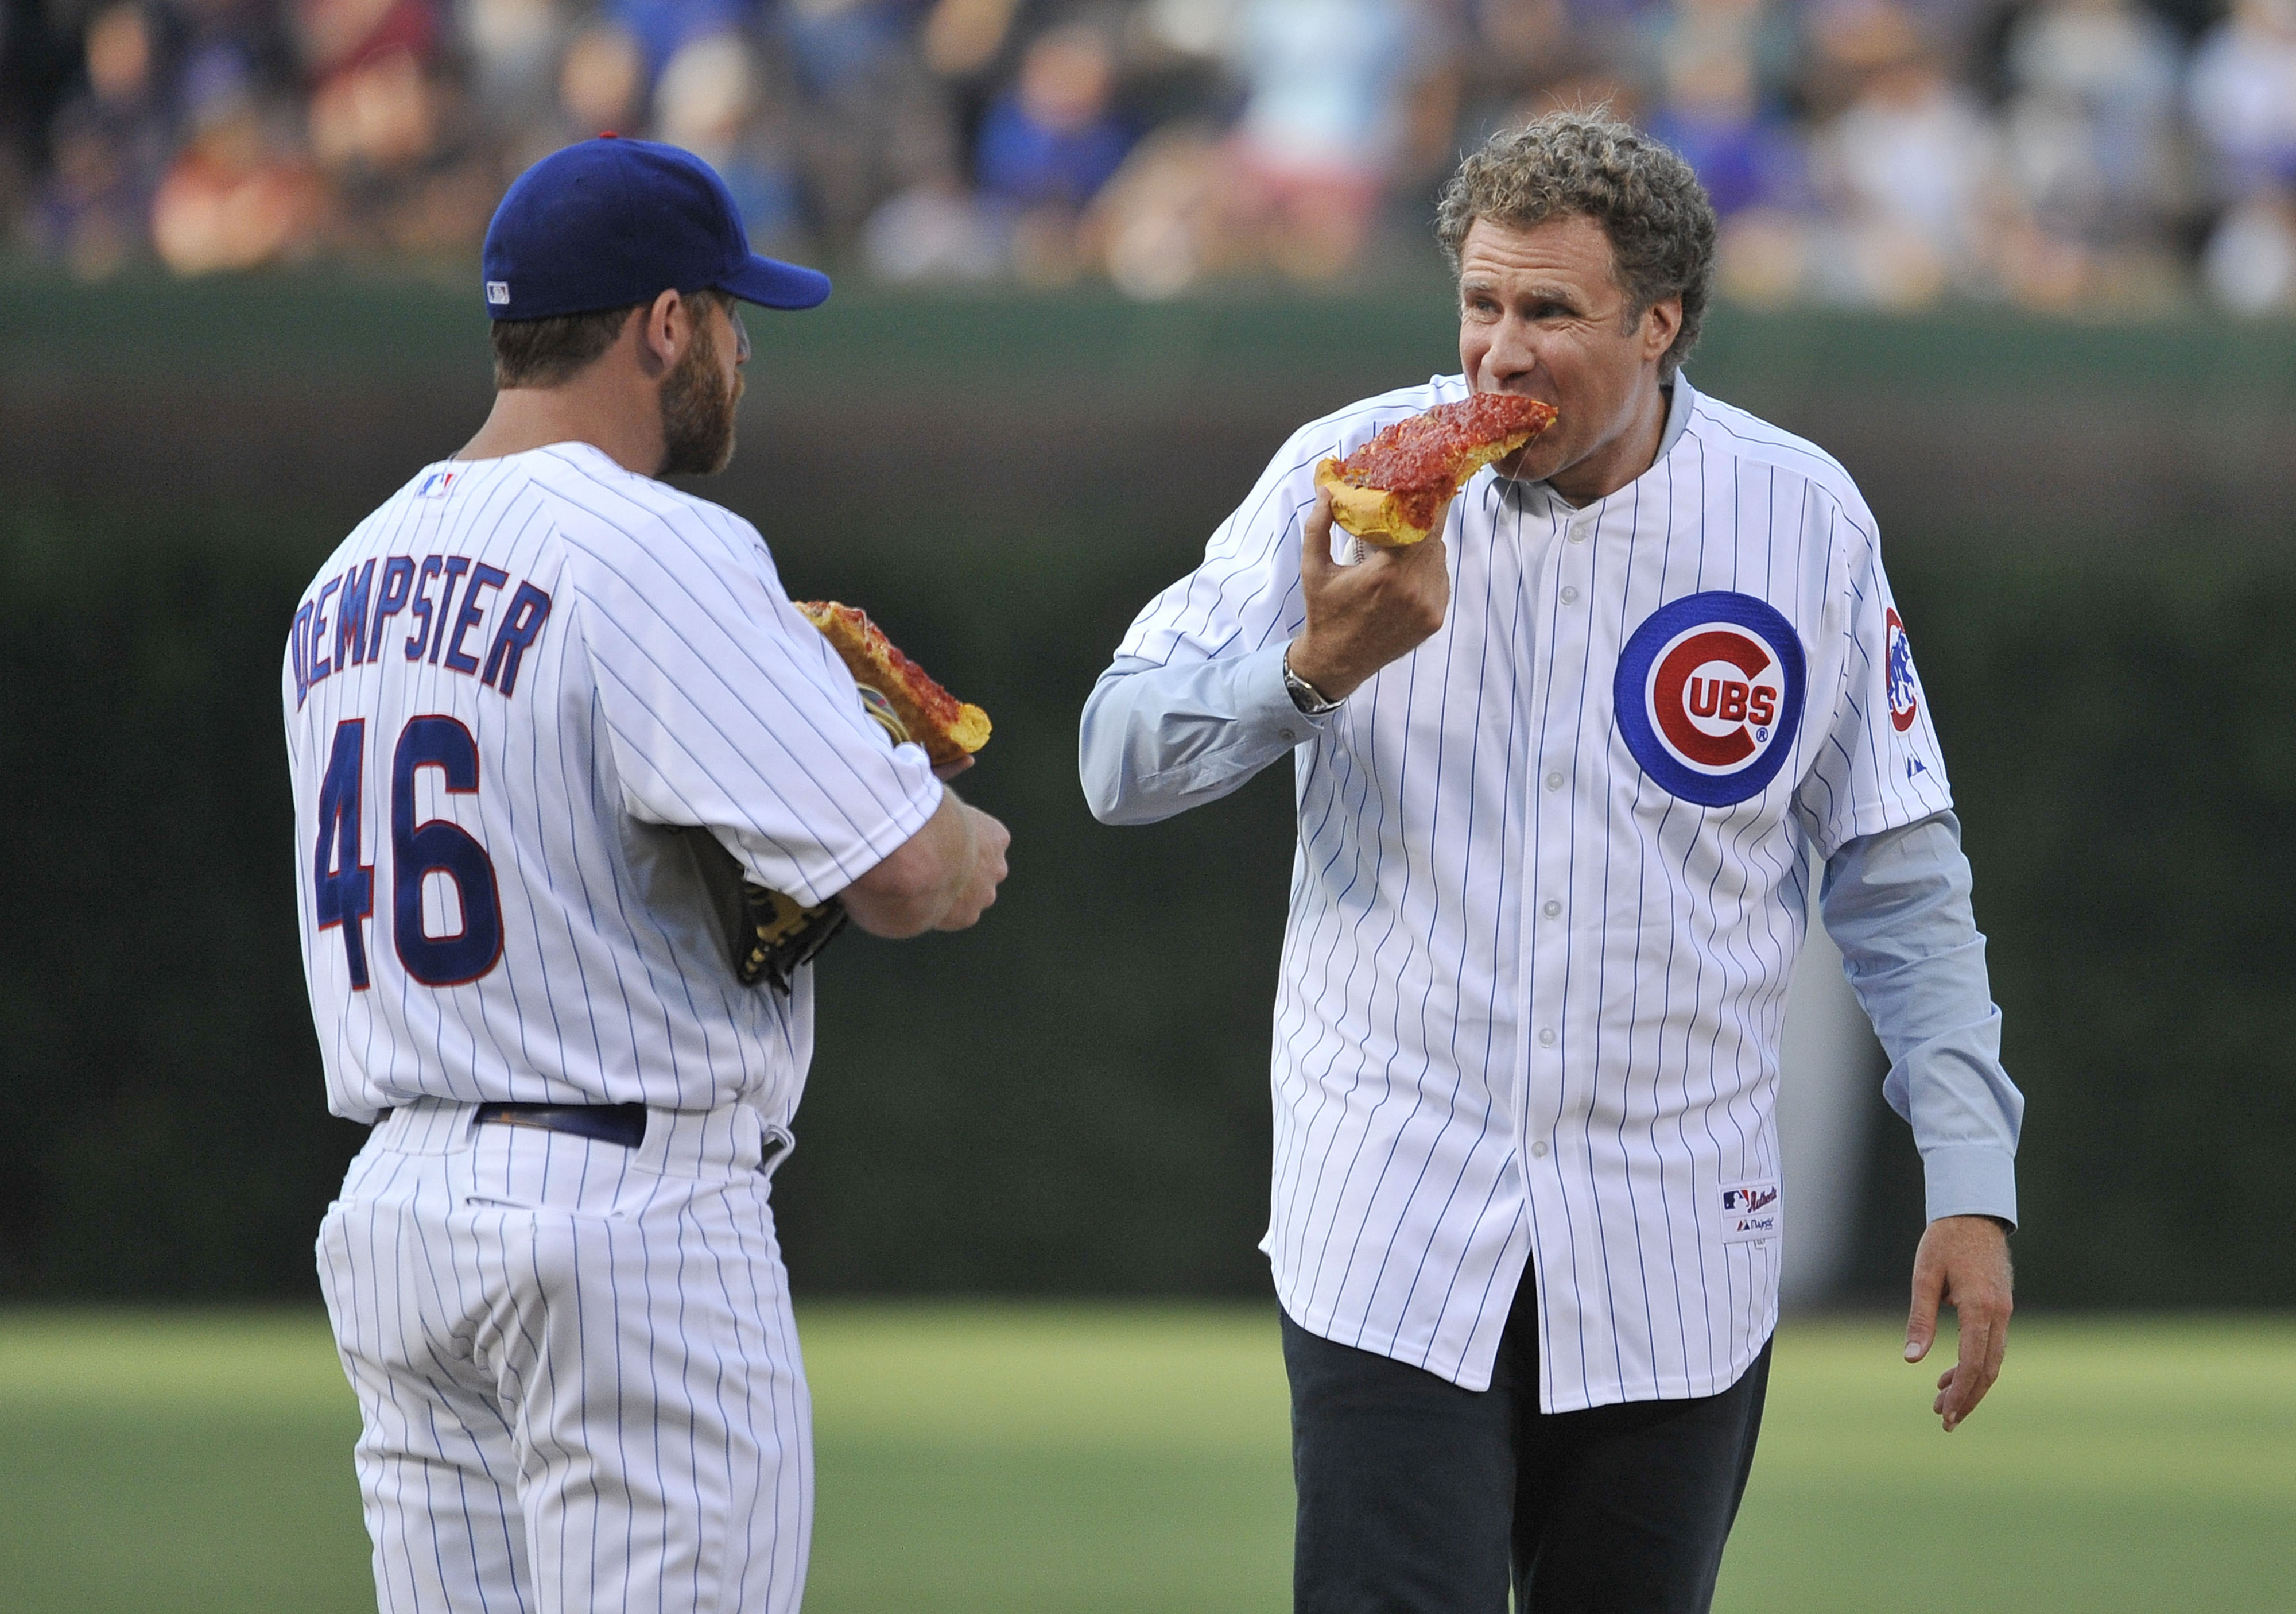 Former USC Trojan Will Ferrell did some recruiting work on Sunday, trying to lure Ryan Dempster to Los Angeles.